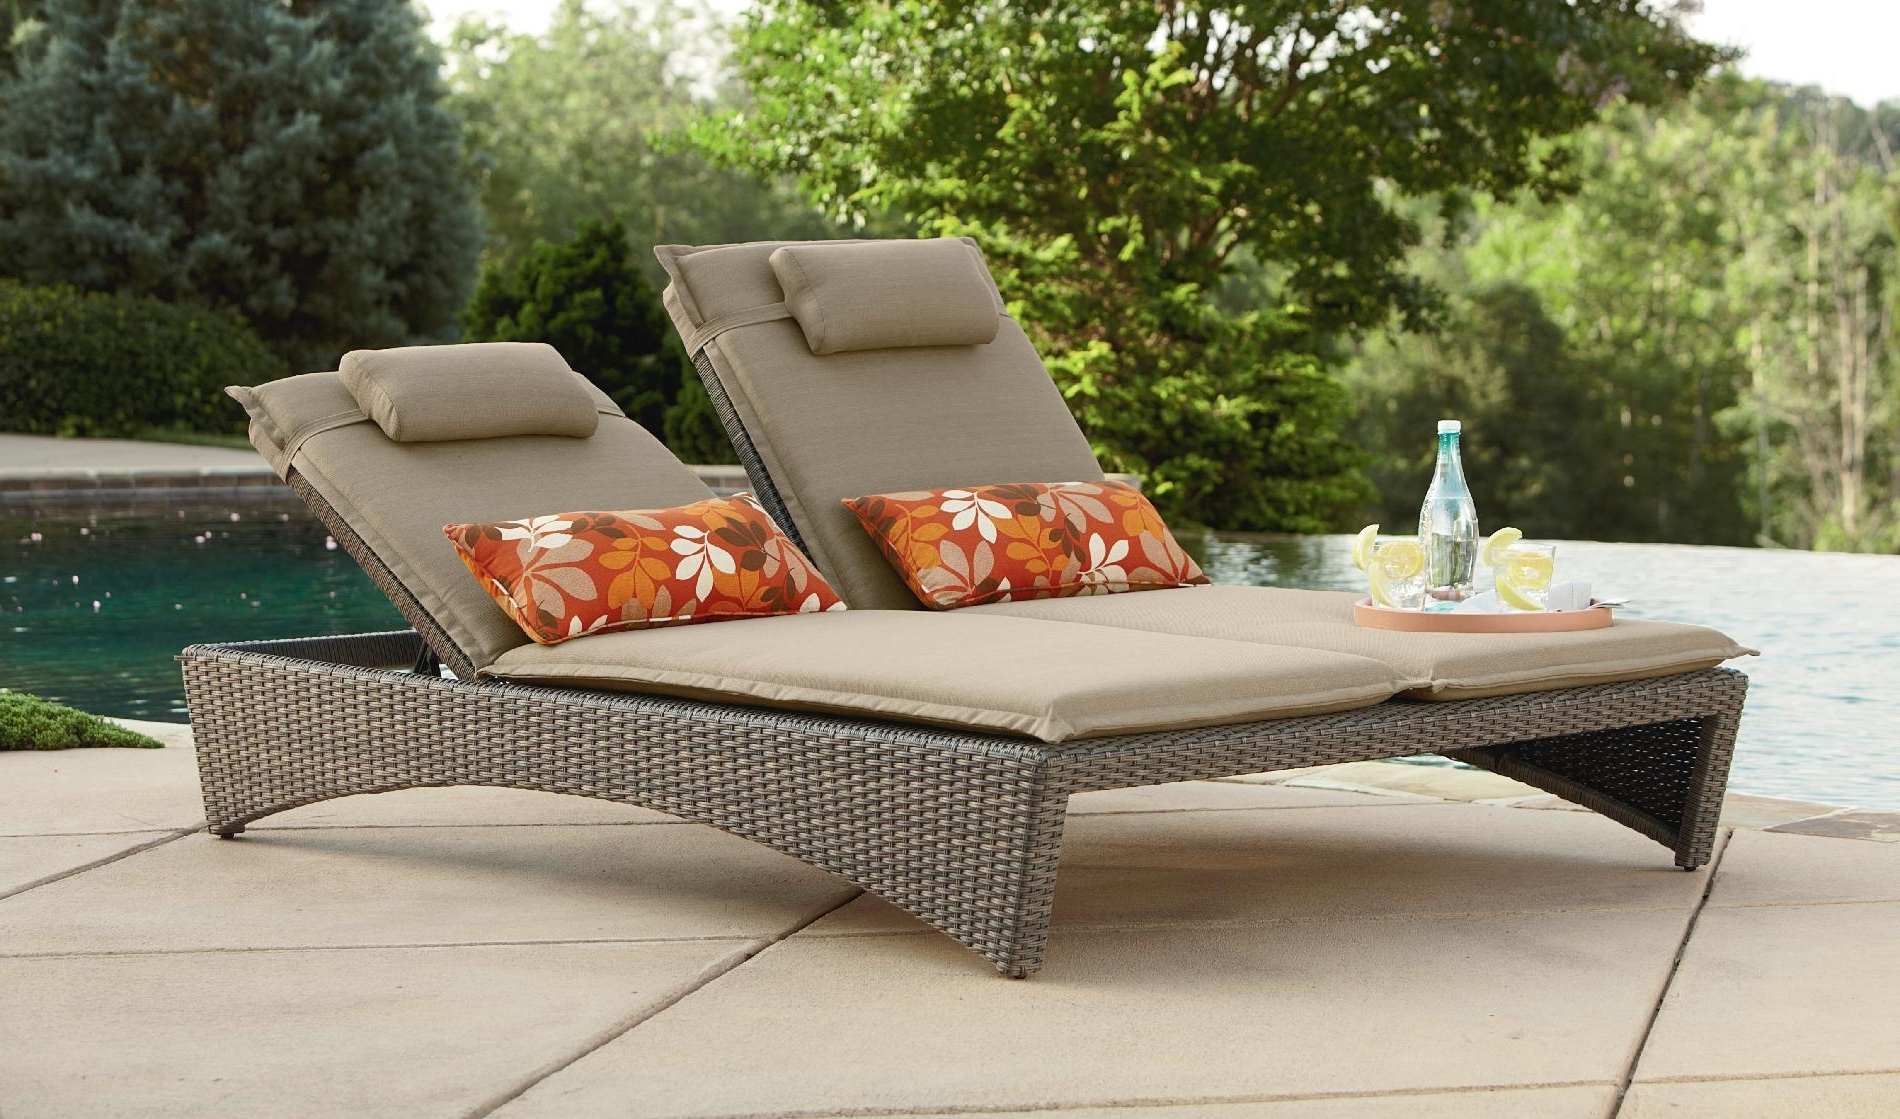 Best Pool Chaise Lounge Chairs — Bed And Shower : Decorating Pool In Famous Chaise Lounge Lawn Chairs (View 1 of 15)